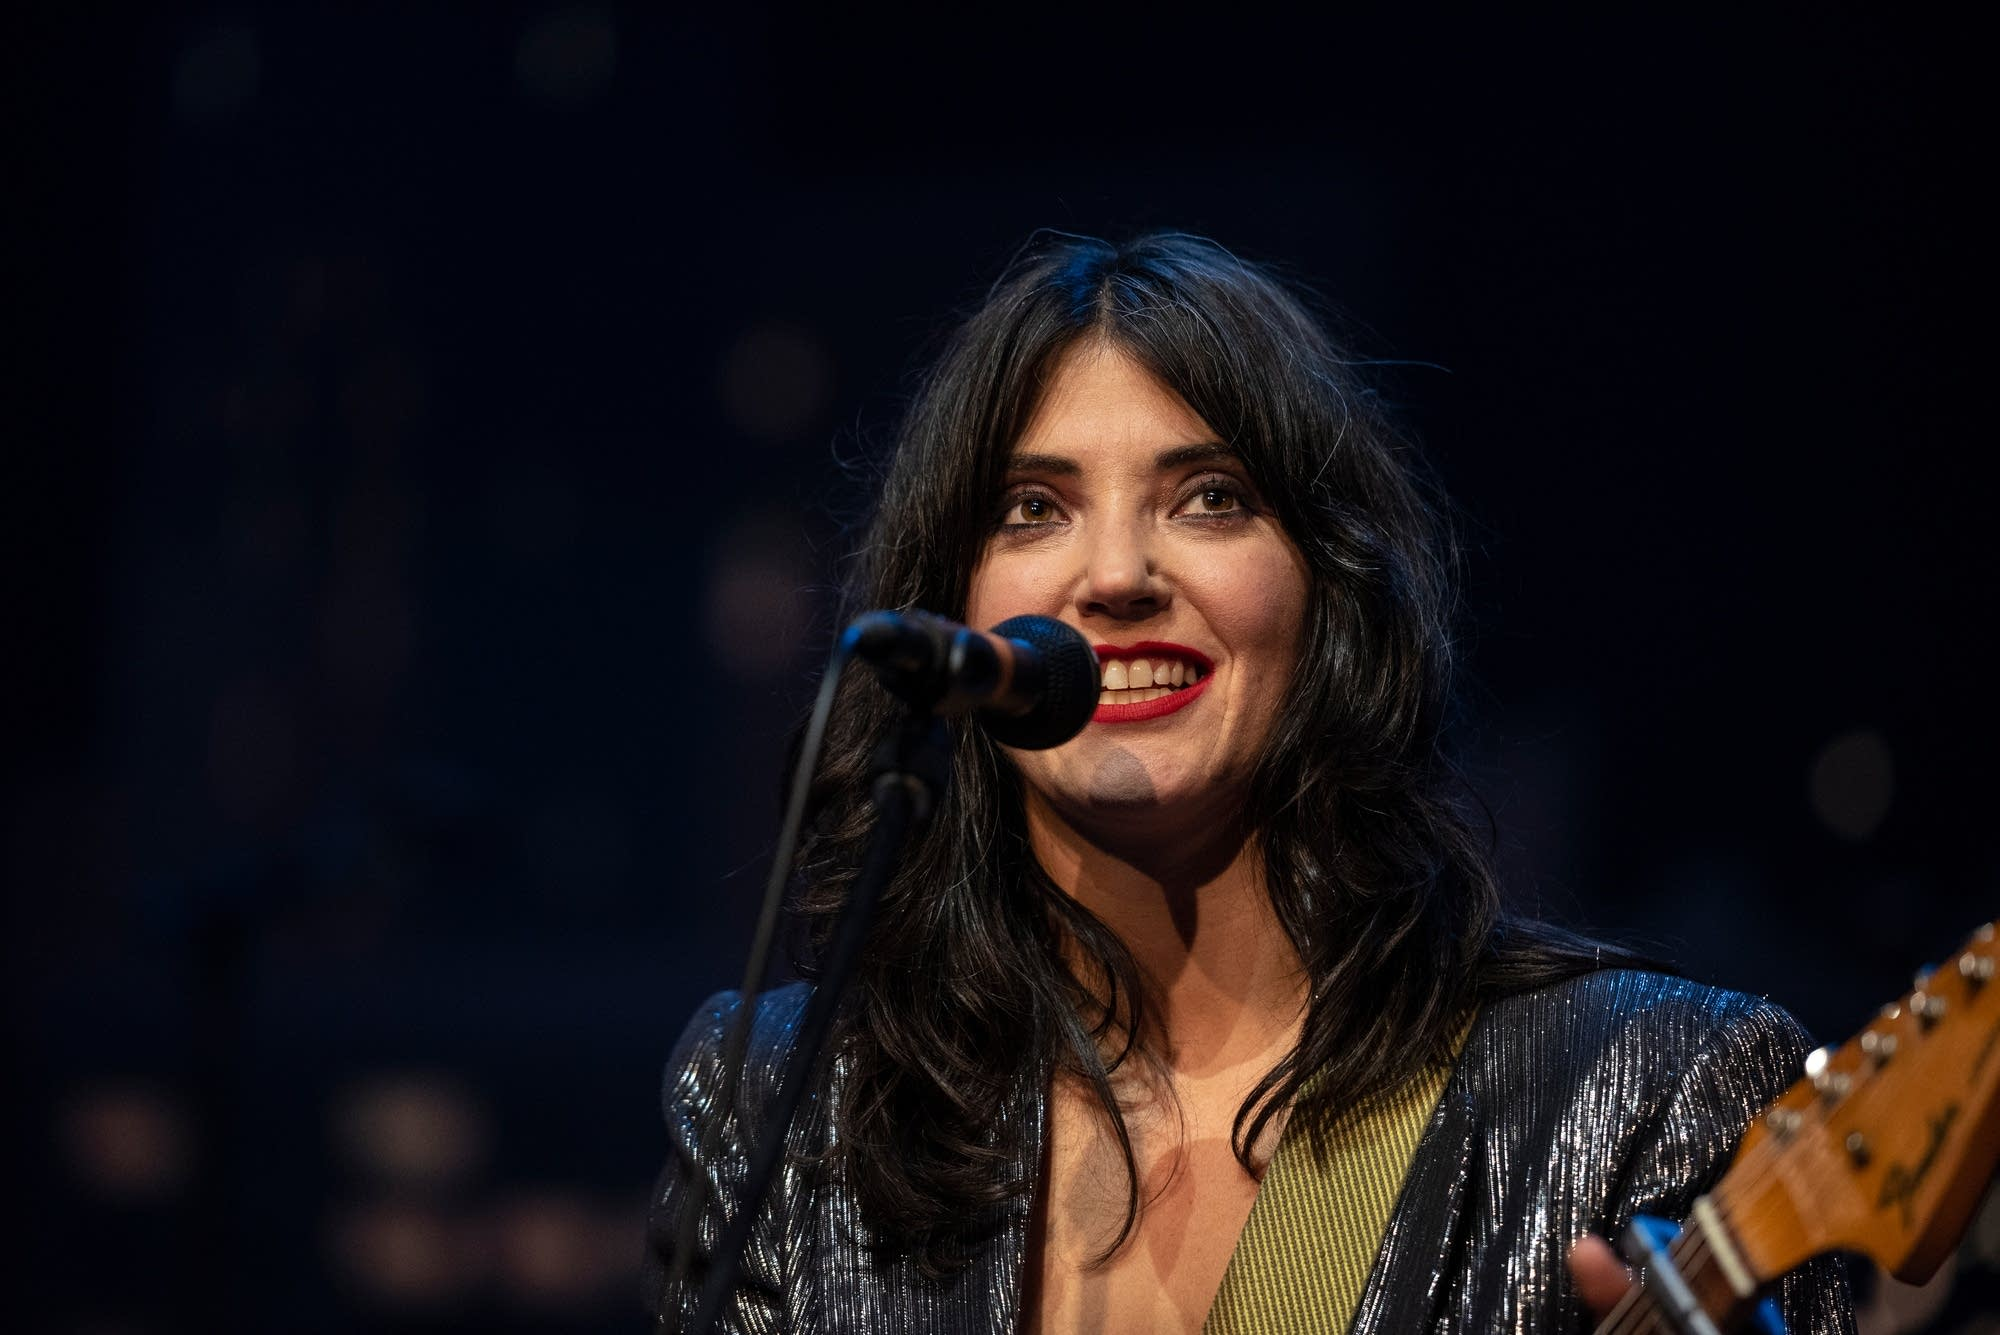 Sharon Van Etten performs on 'Austin City Limits' on PBS